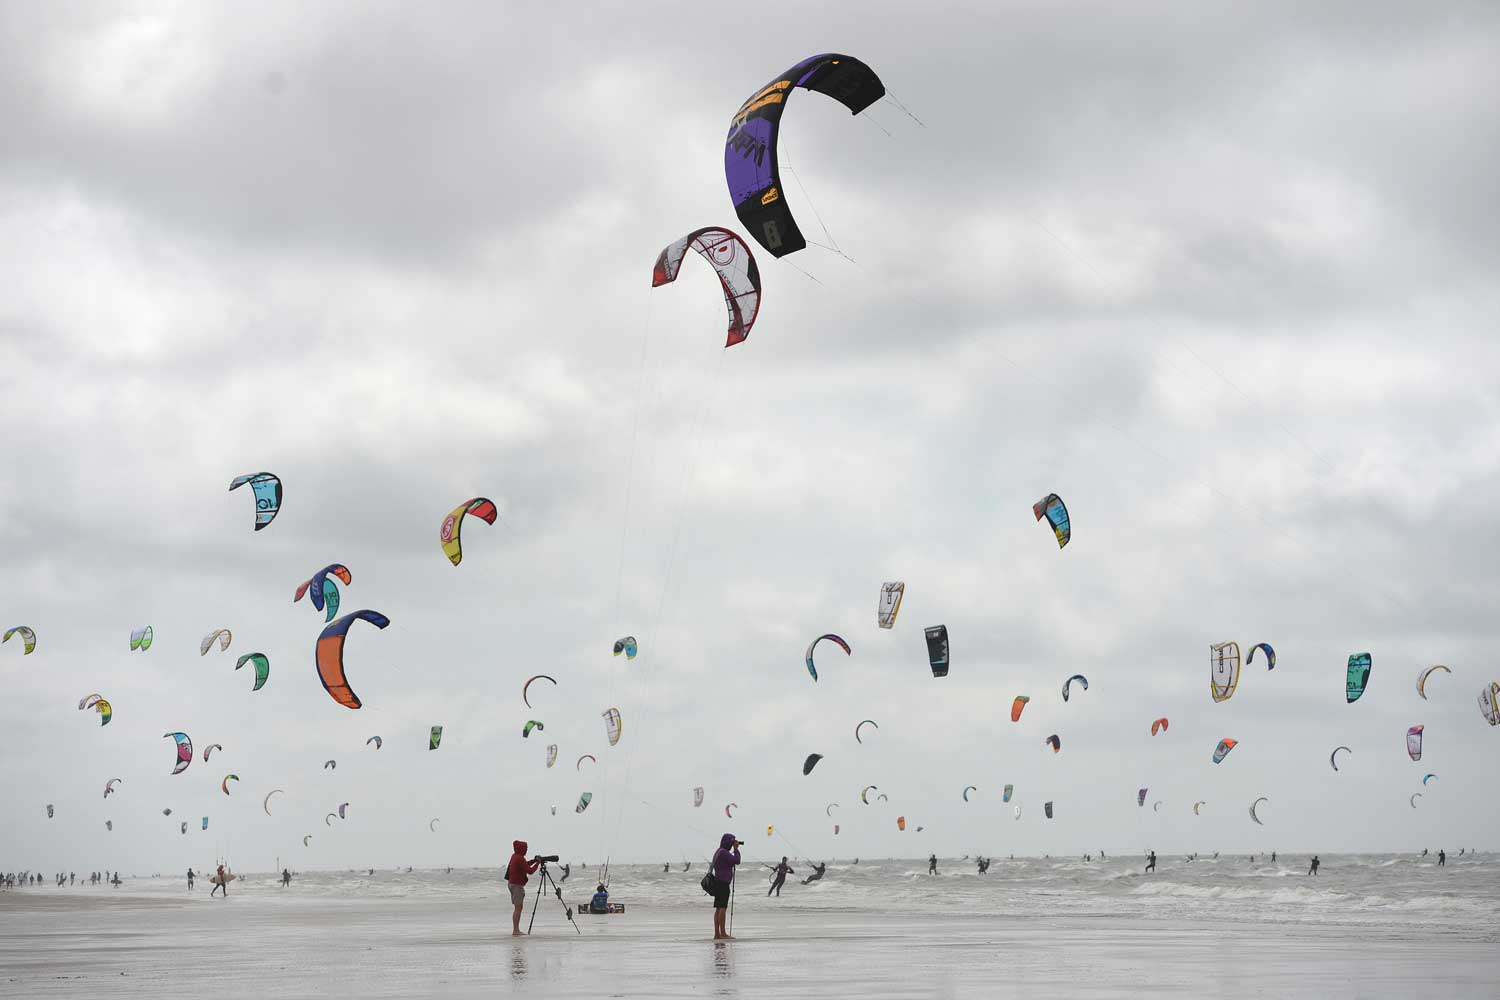 Contestants training for the Kite Surf World Cup in St Peter-Ording, Germany.